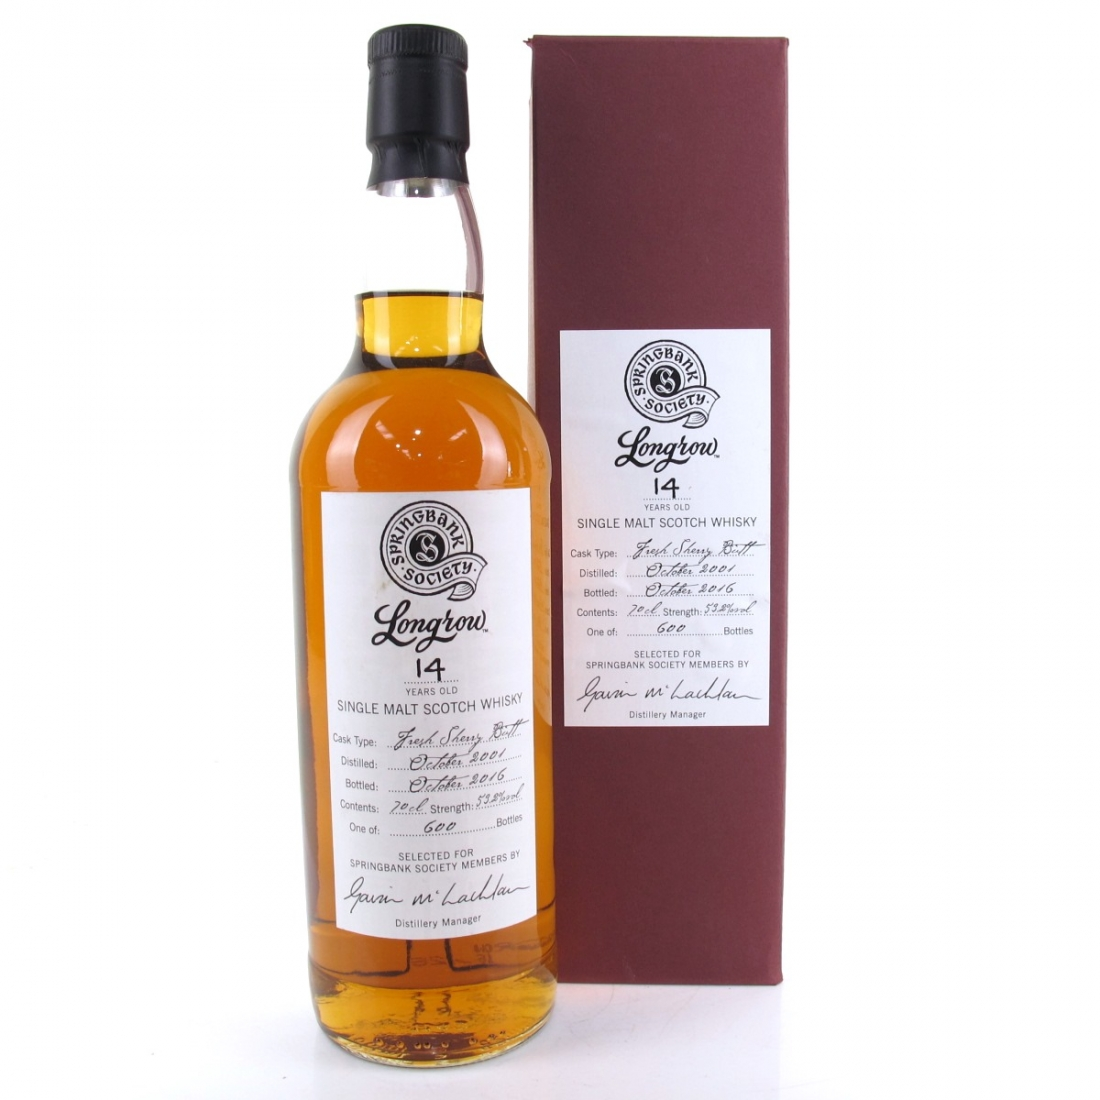 Longrow 2001 Springbank Society 14 Year Old / Fresh Sherry Butt